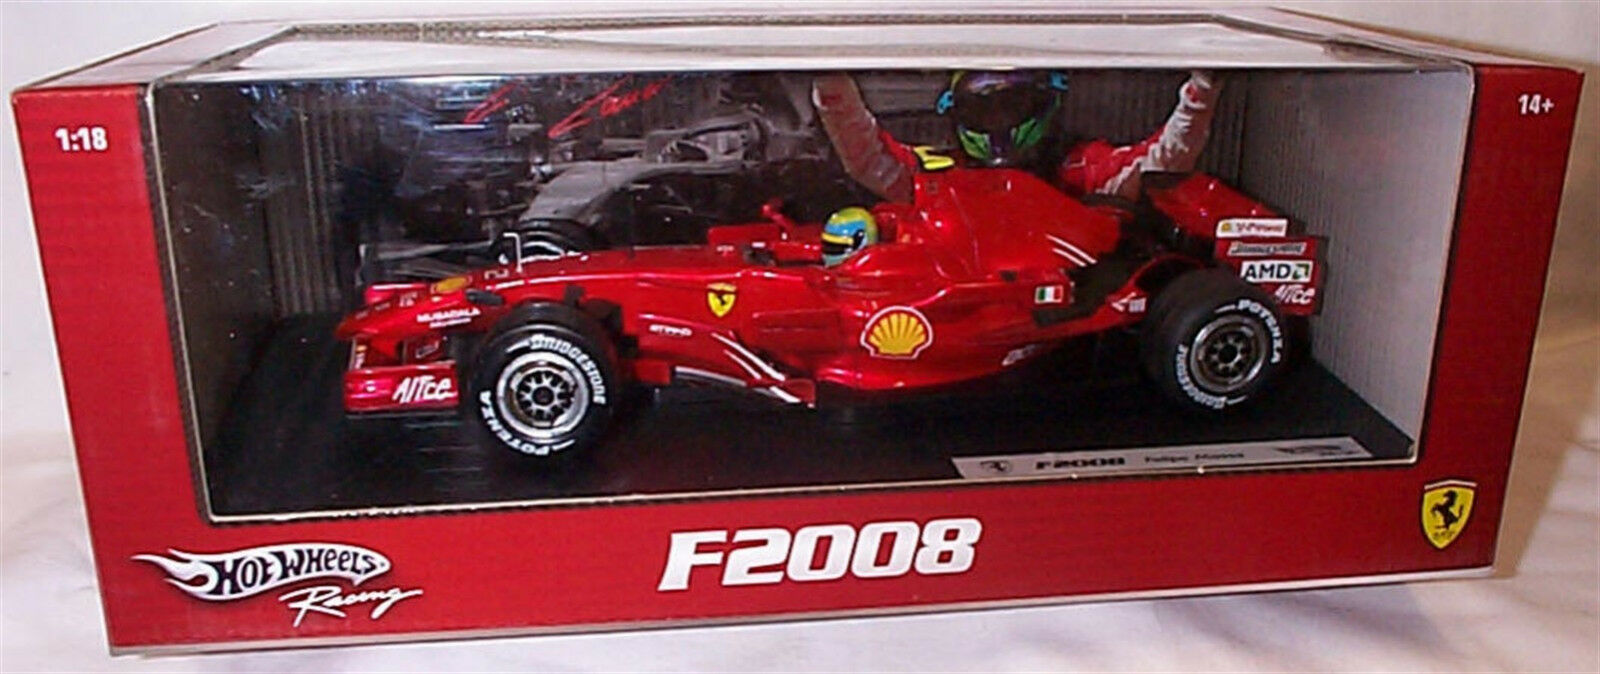 Hot Wheels 1 18 Scale Diecast-M0549 Ferrari F2008 Felipe Massa